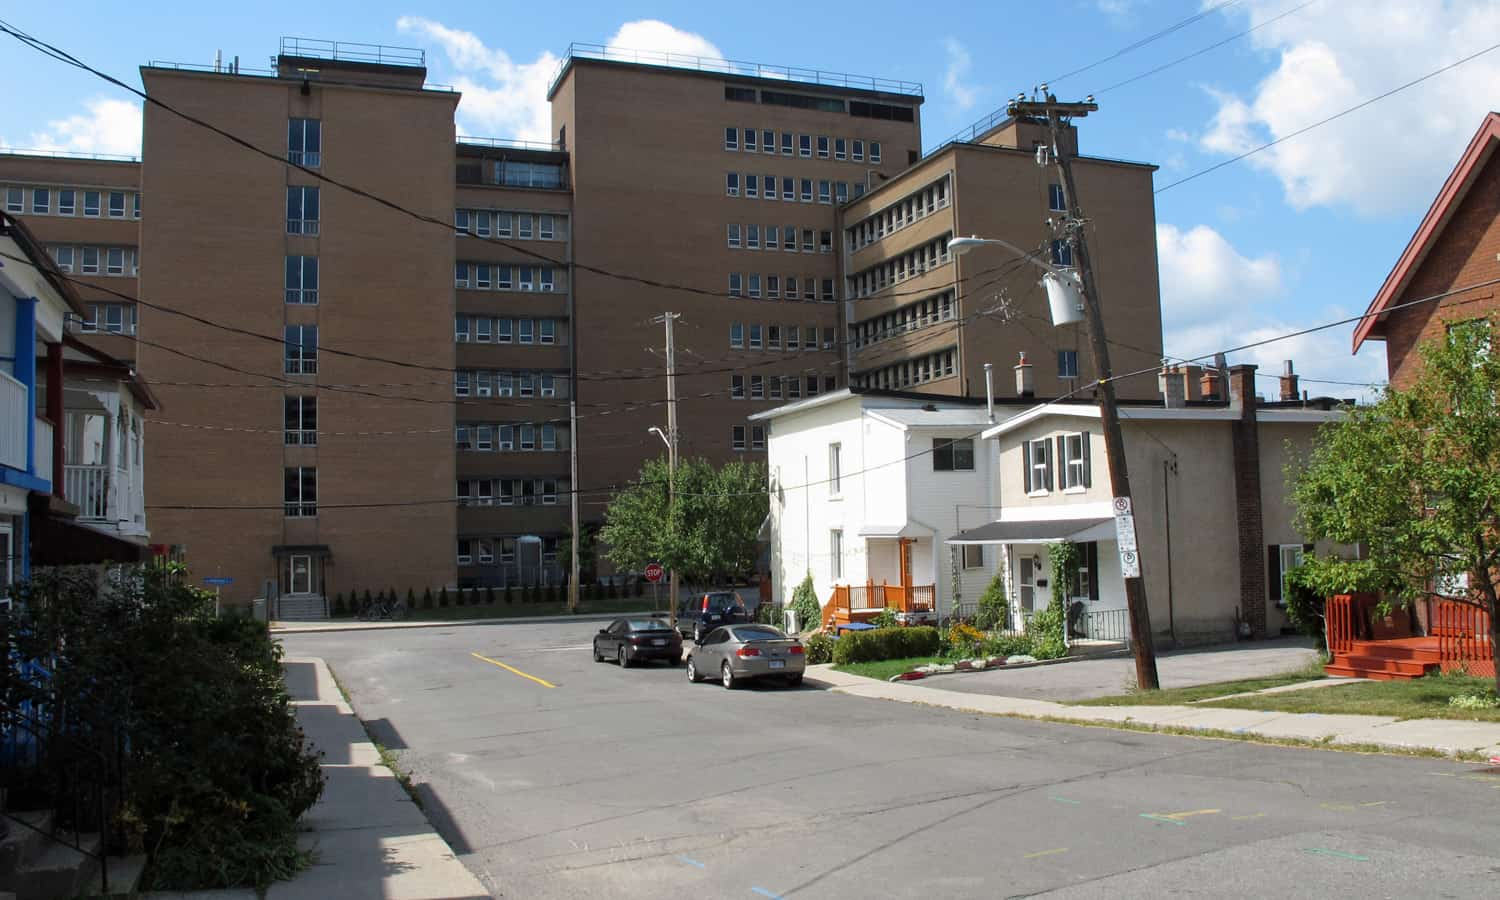 Looking west from the Dalhousie South residential neighbourhood towards the east elevation of the Geological Survey Building